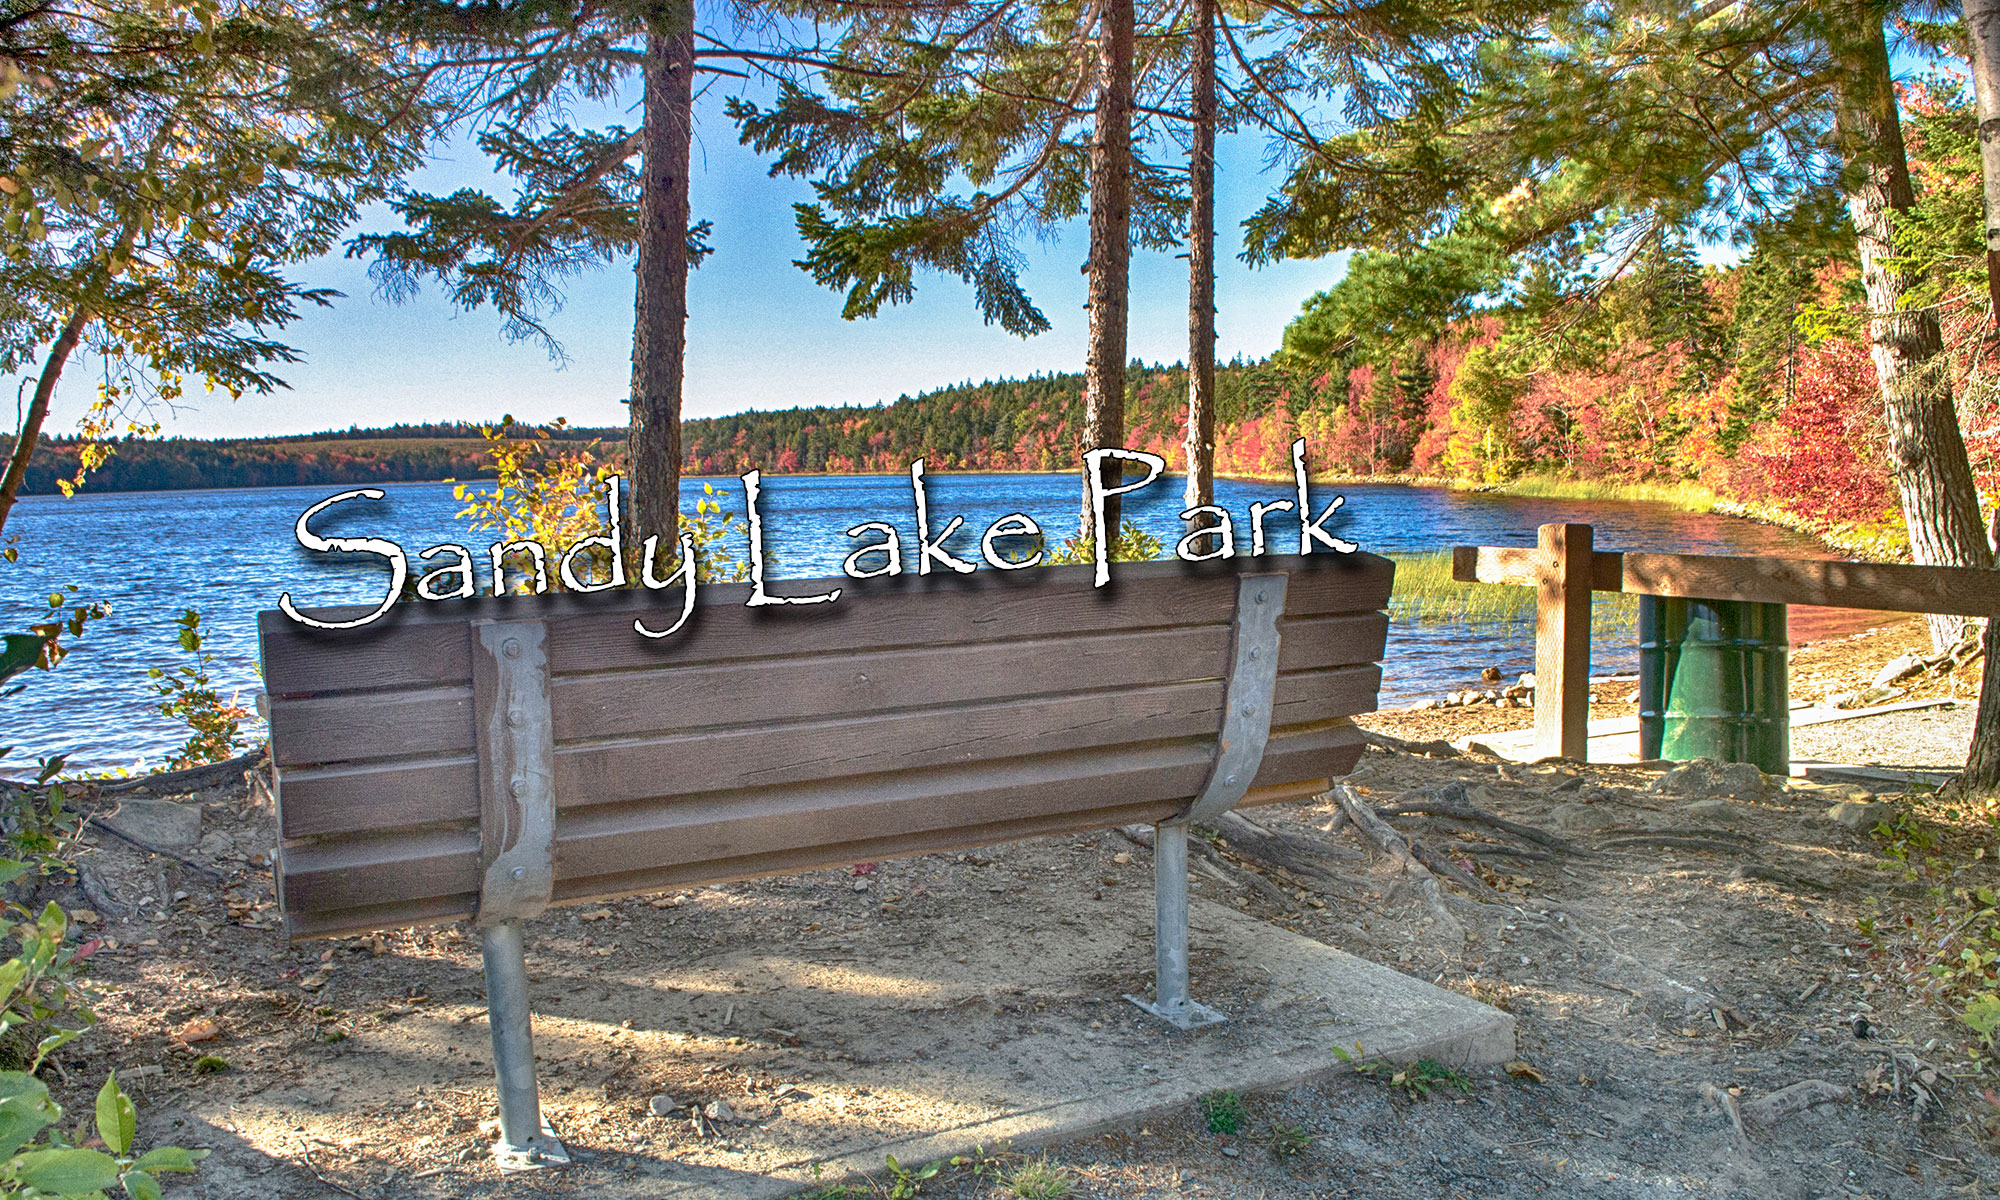 Sandy Lake Park Photos